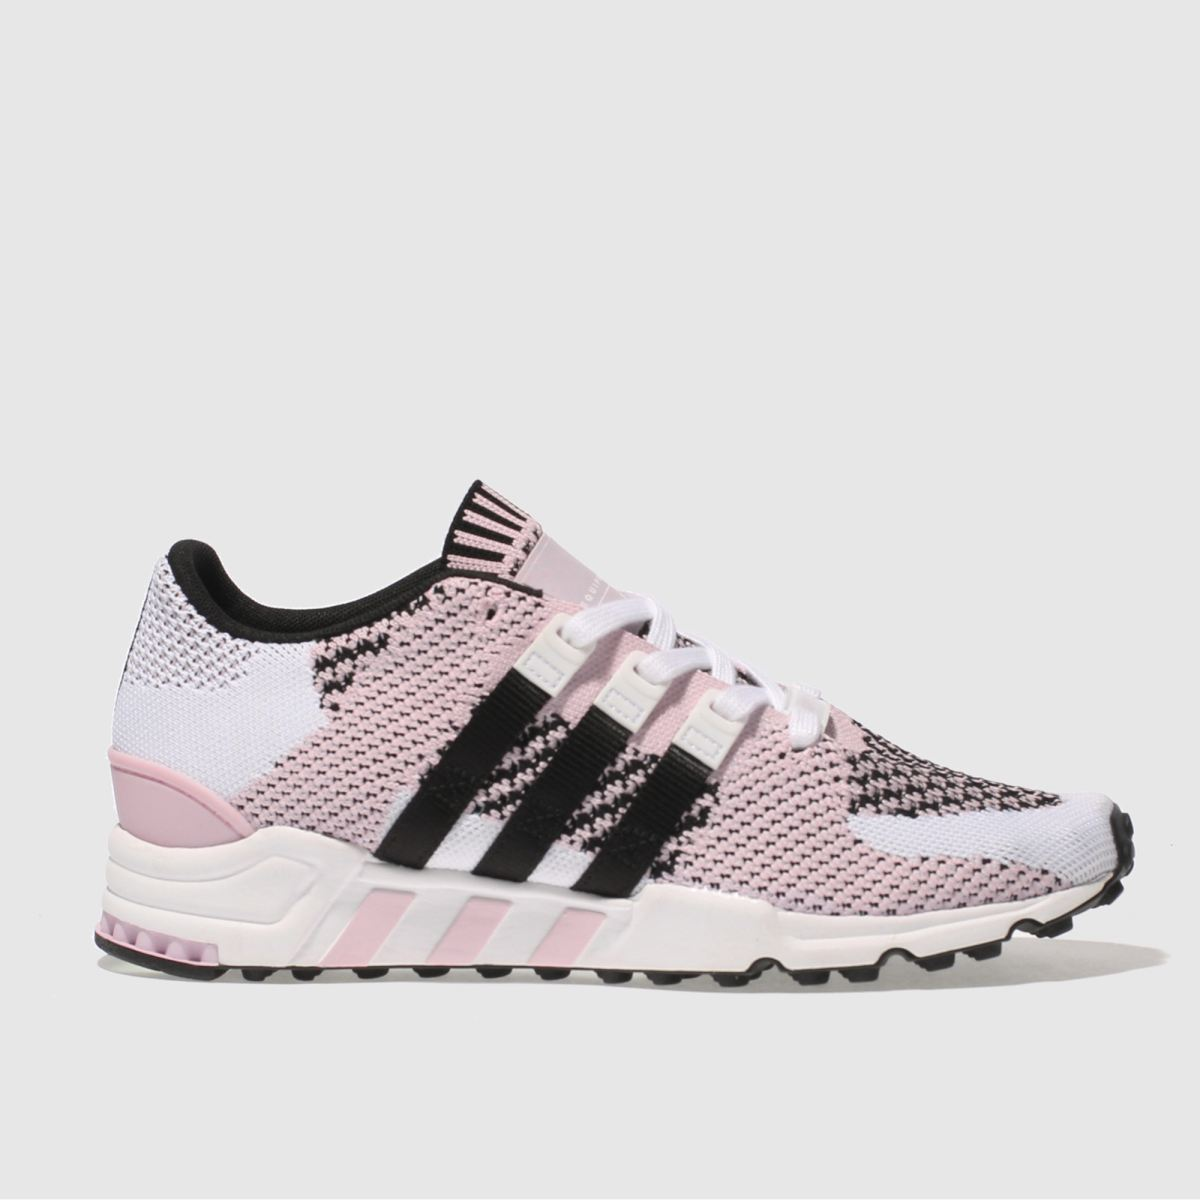 adidas white & pink eqt support rf primeknit trainers